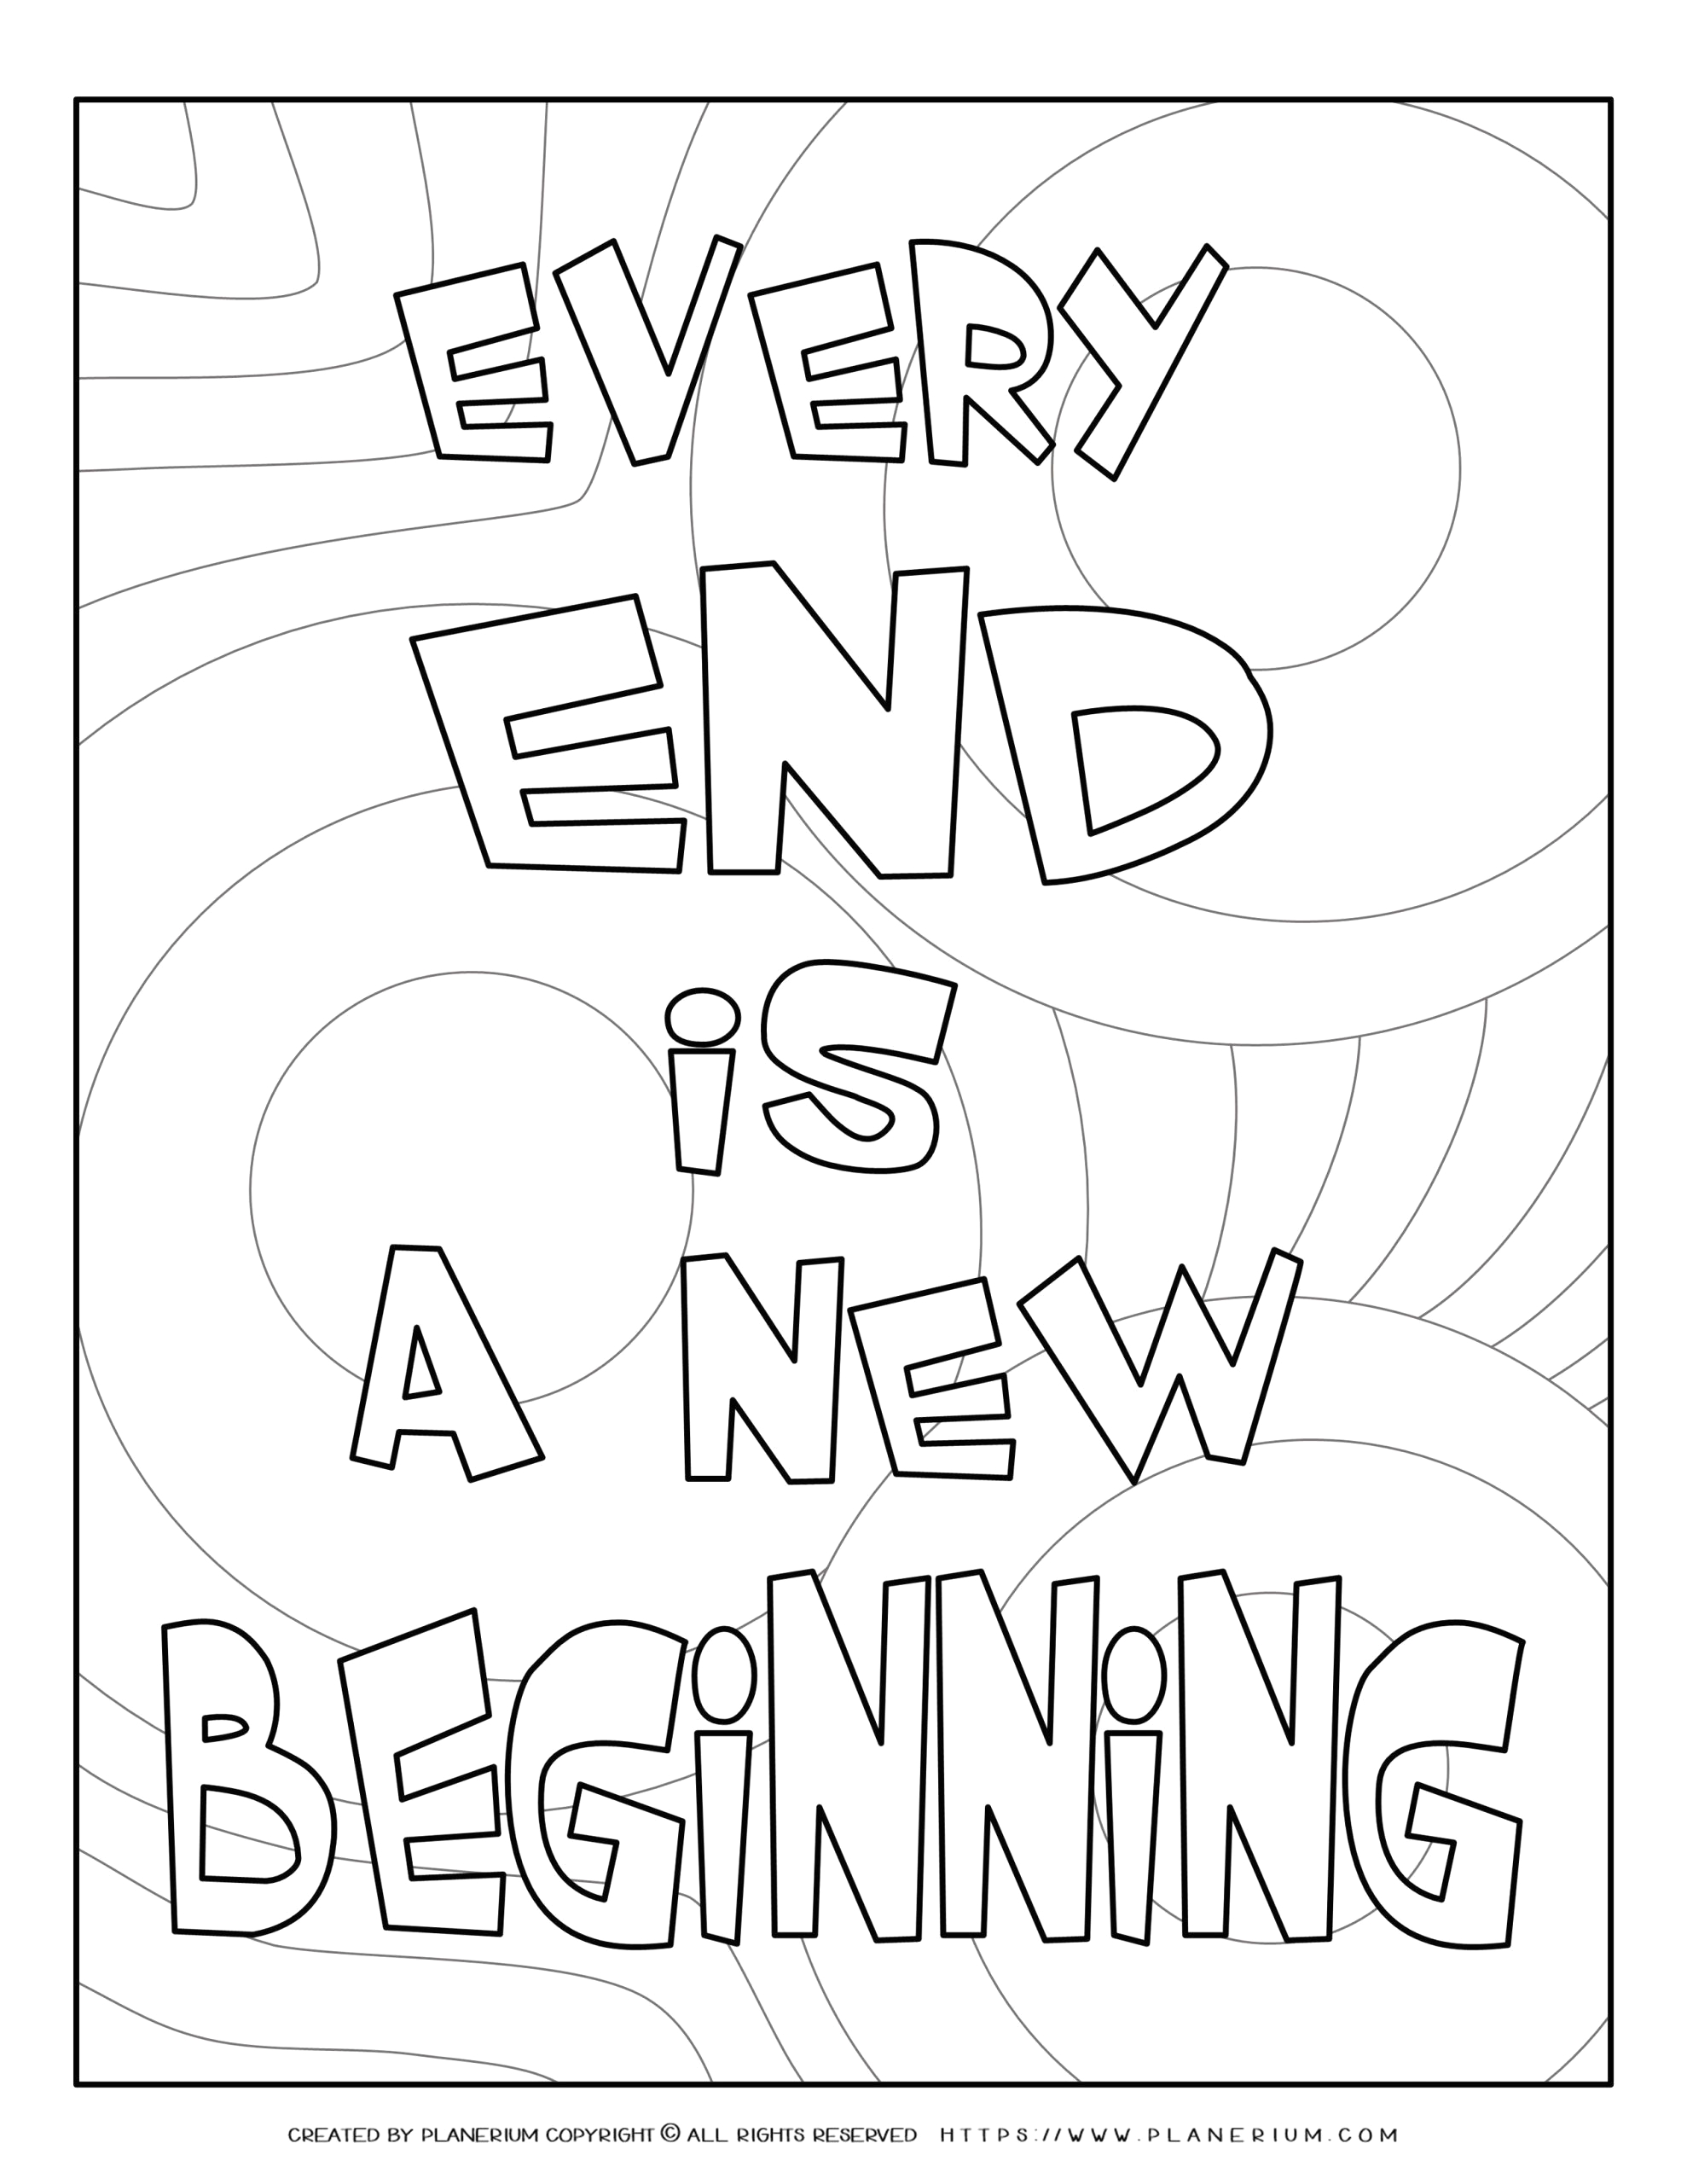 End Of School Year Coloring Pages for Kids End Of Year Coloring Every End is A New Beginning